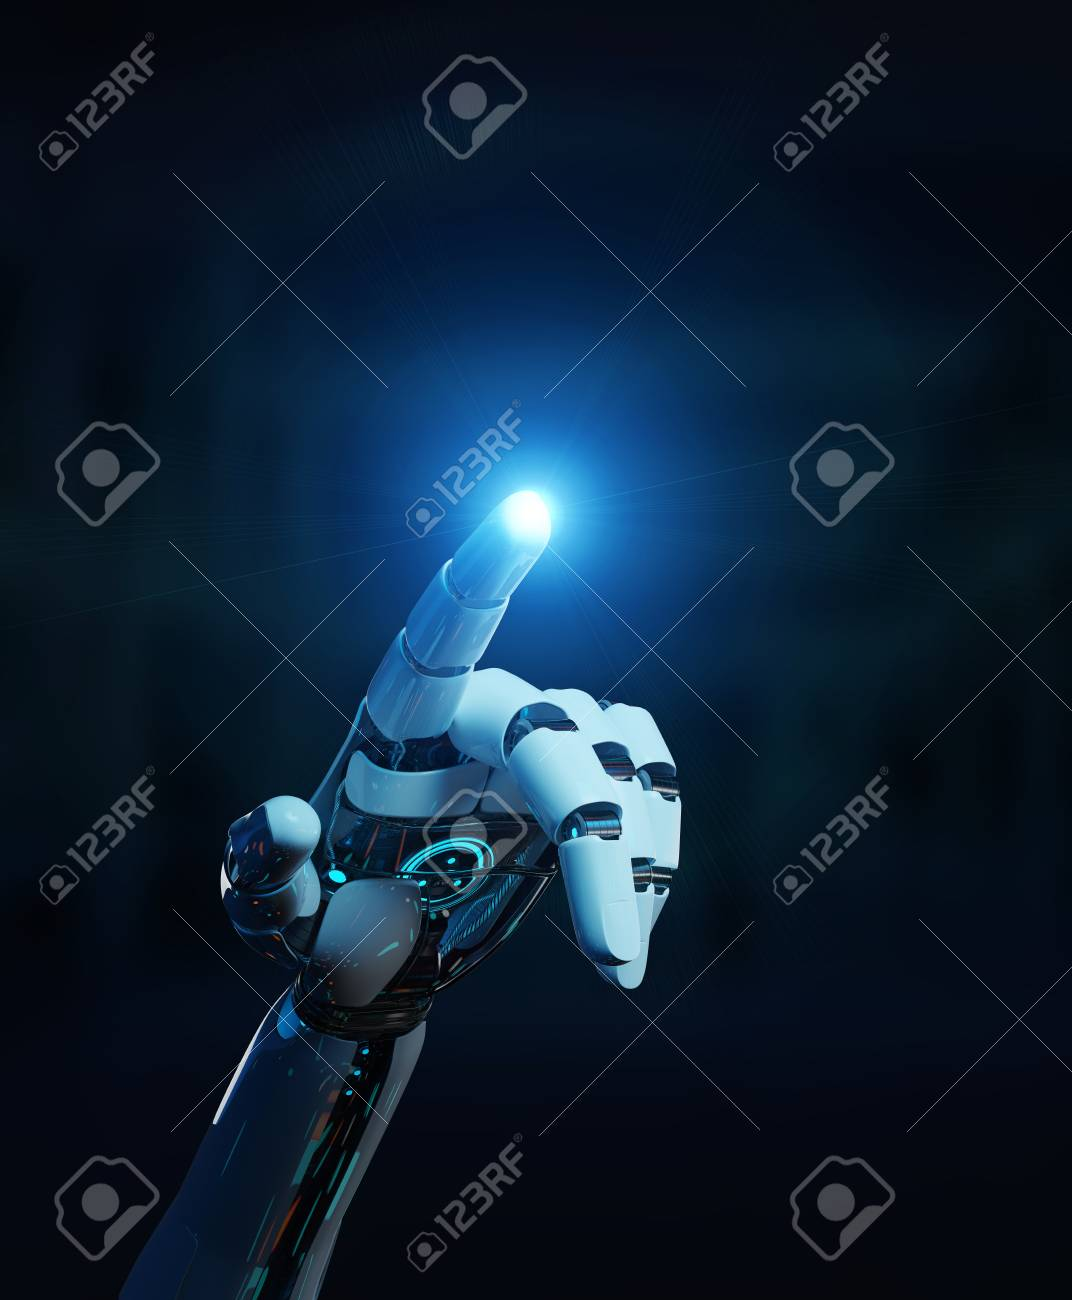 White cyborg pointing his finger isolated on dark background 3D rendering - 106081157